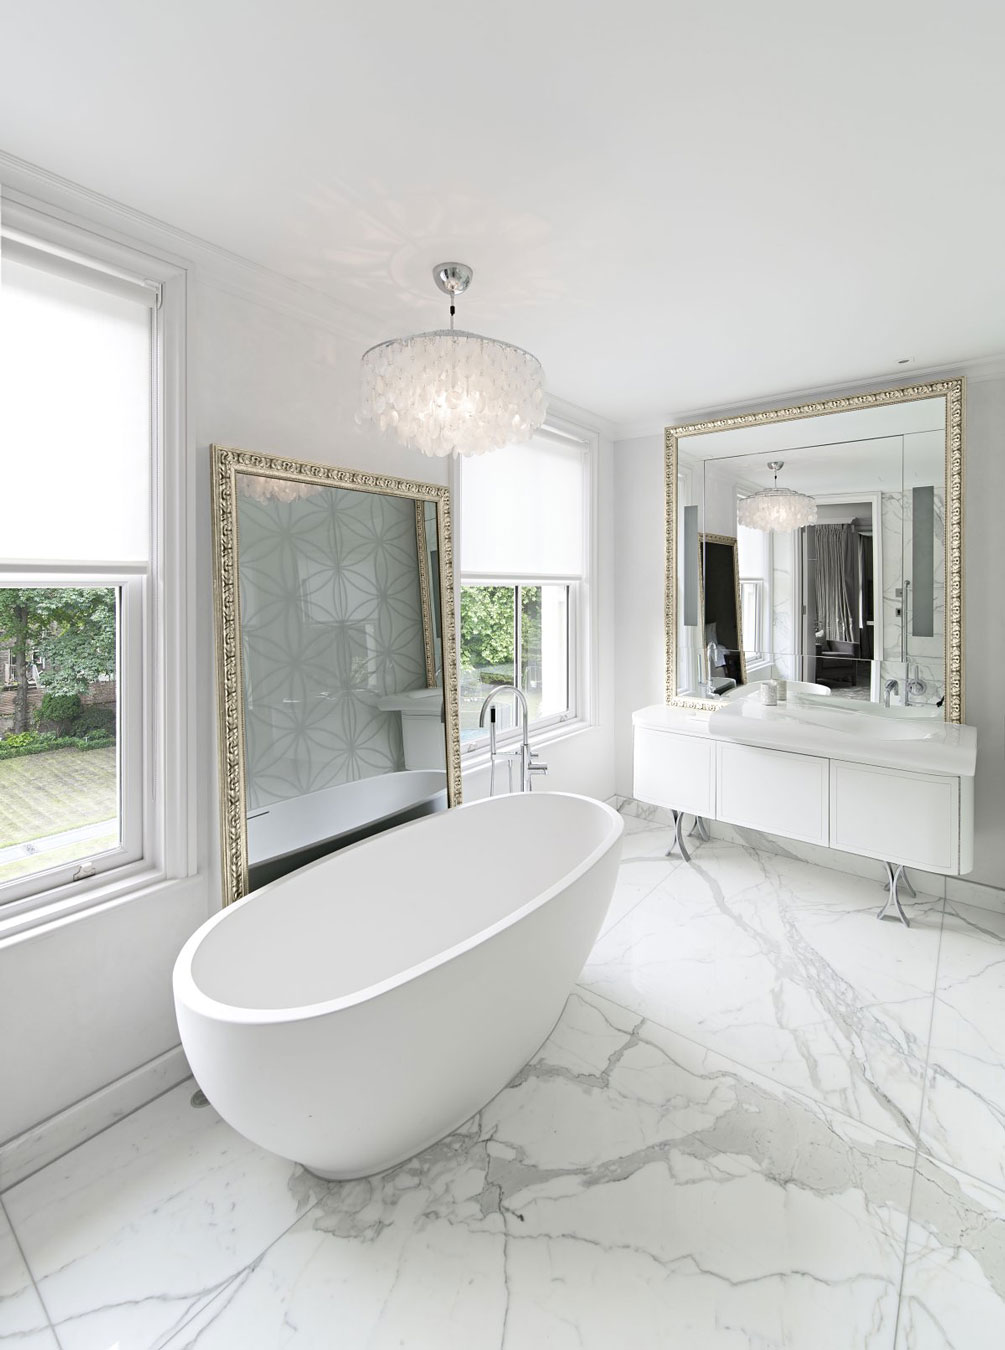 Marble tiles to enhance a classic style